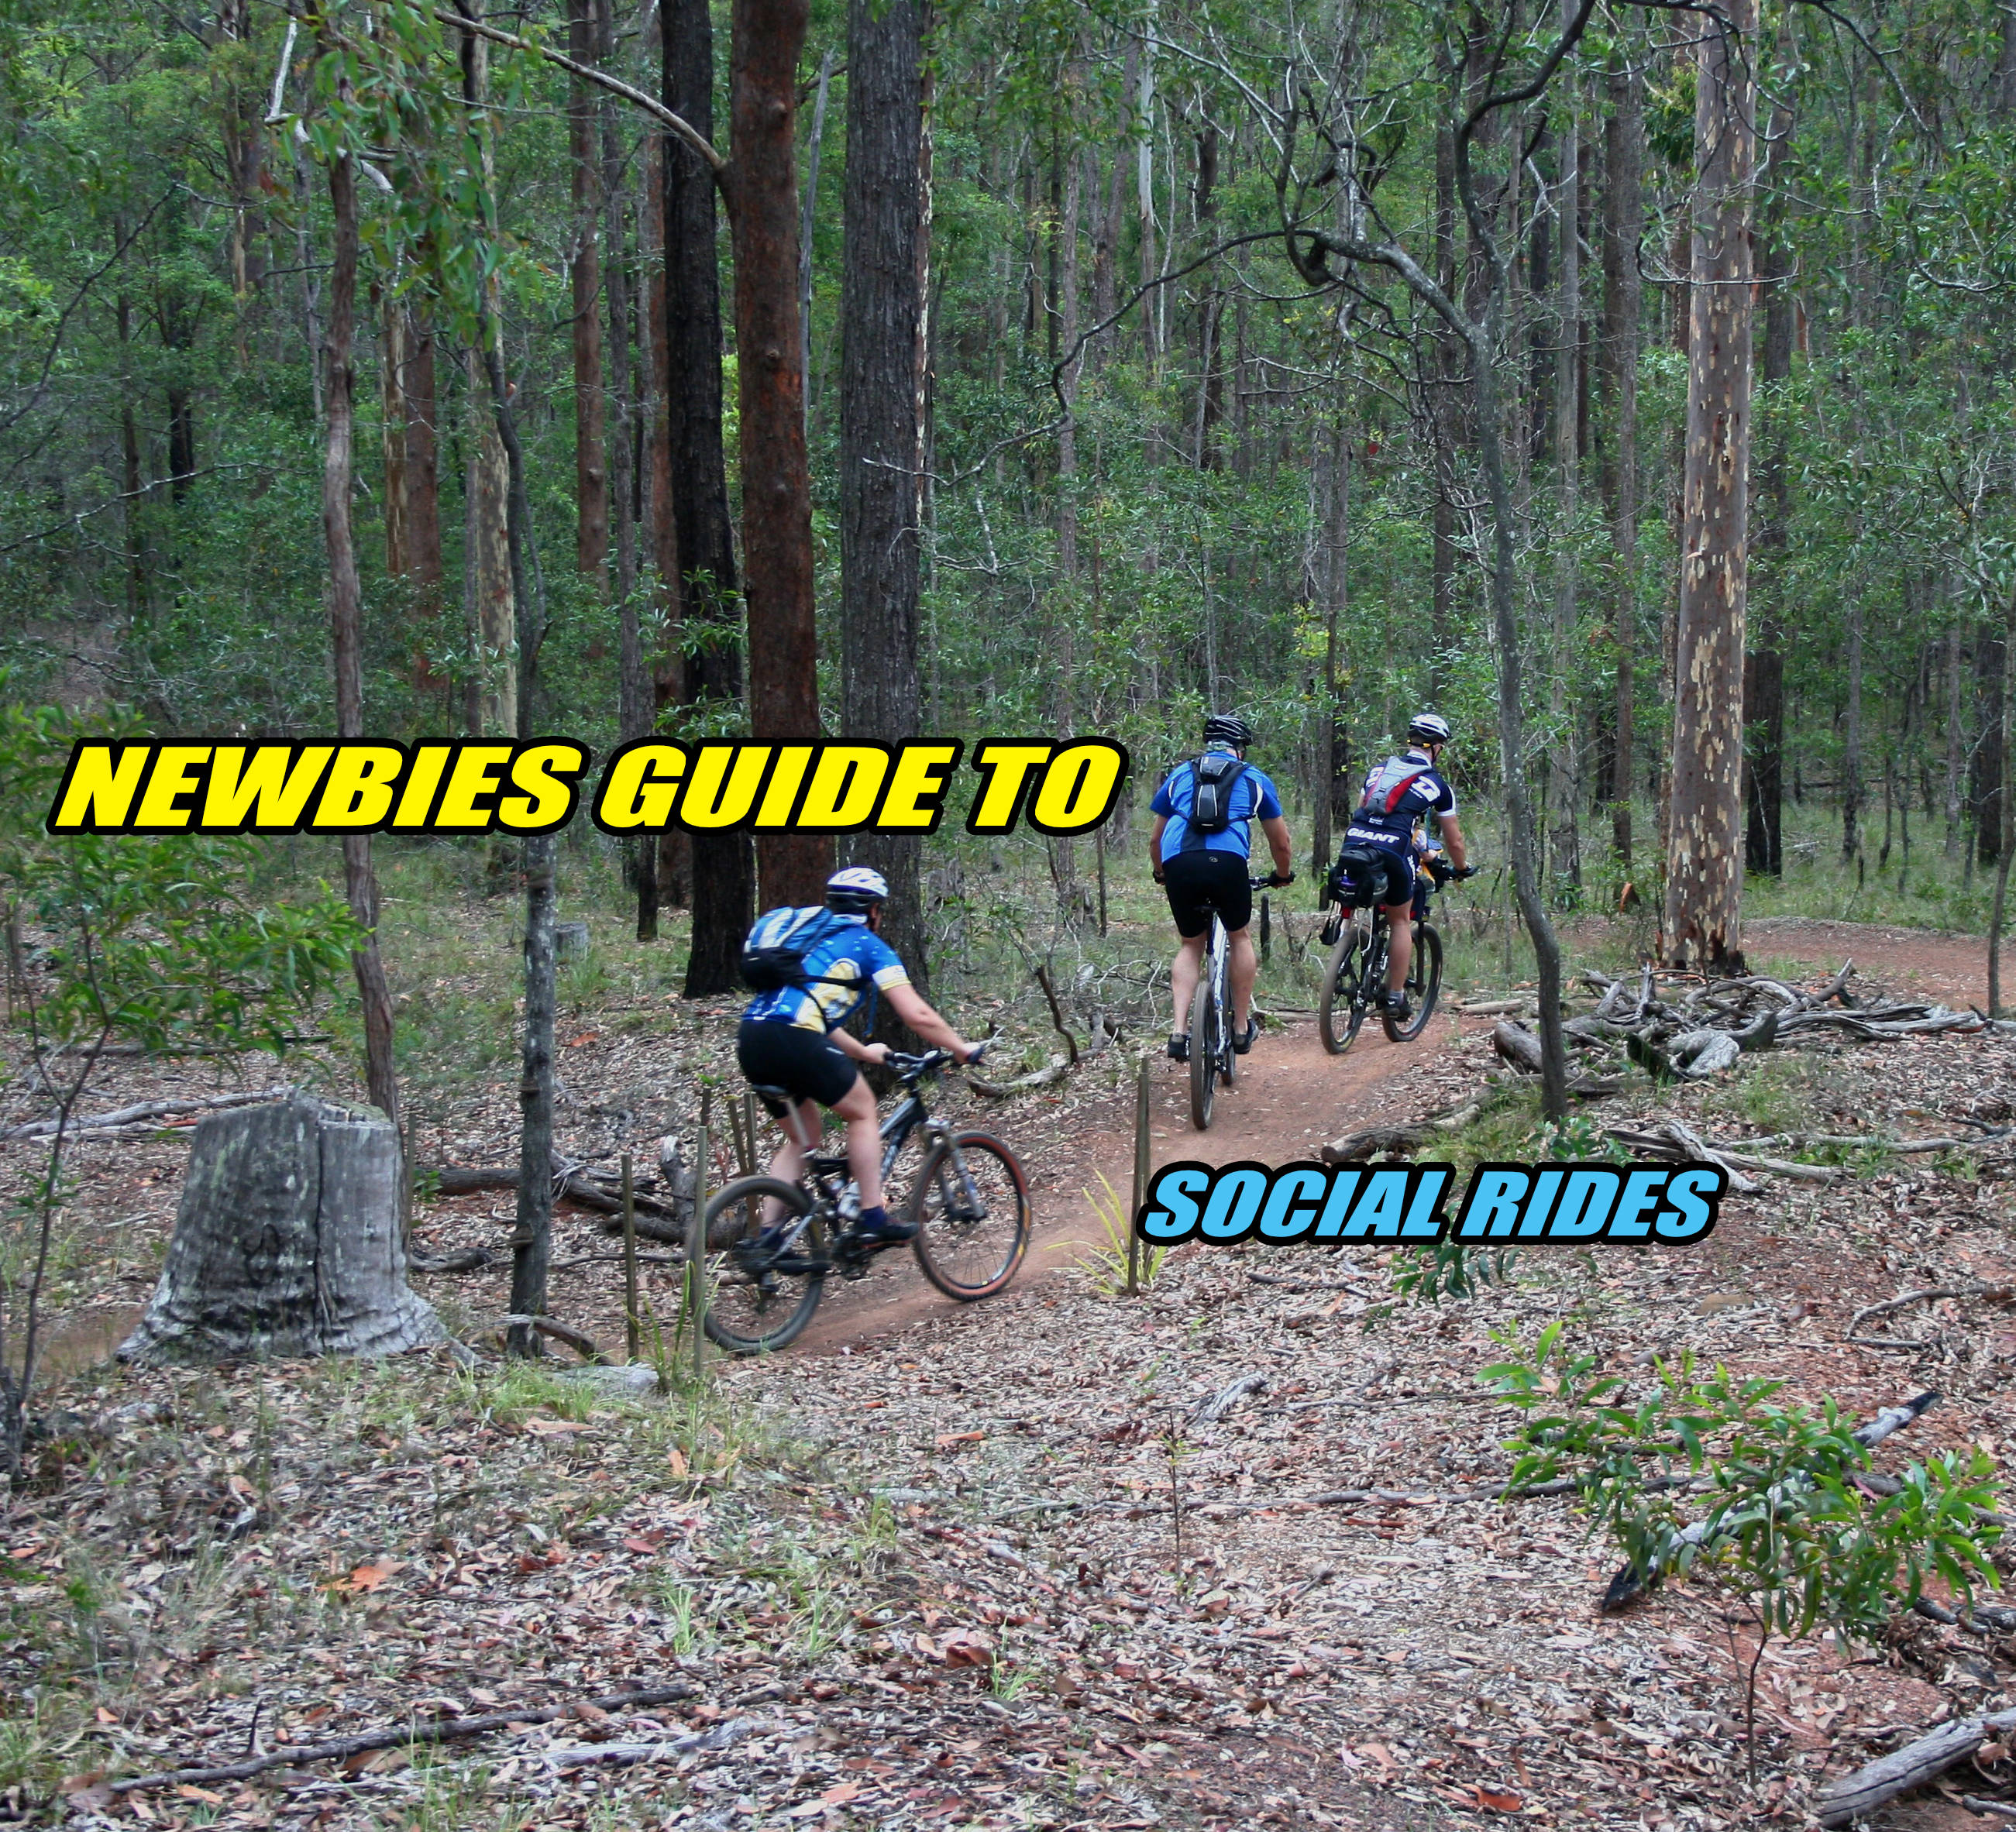 Newbies guide to social rides momentum is your friend